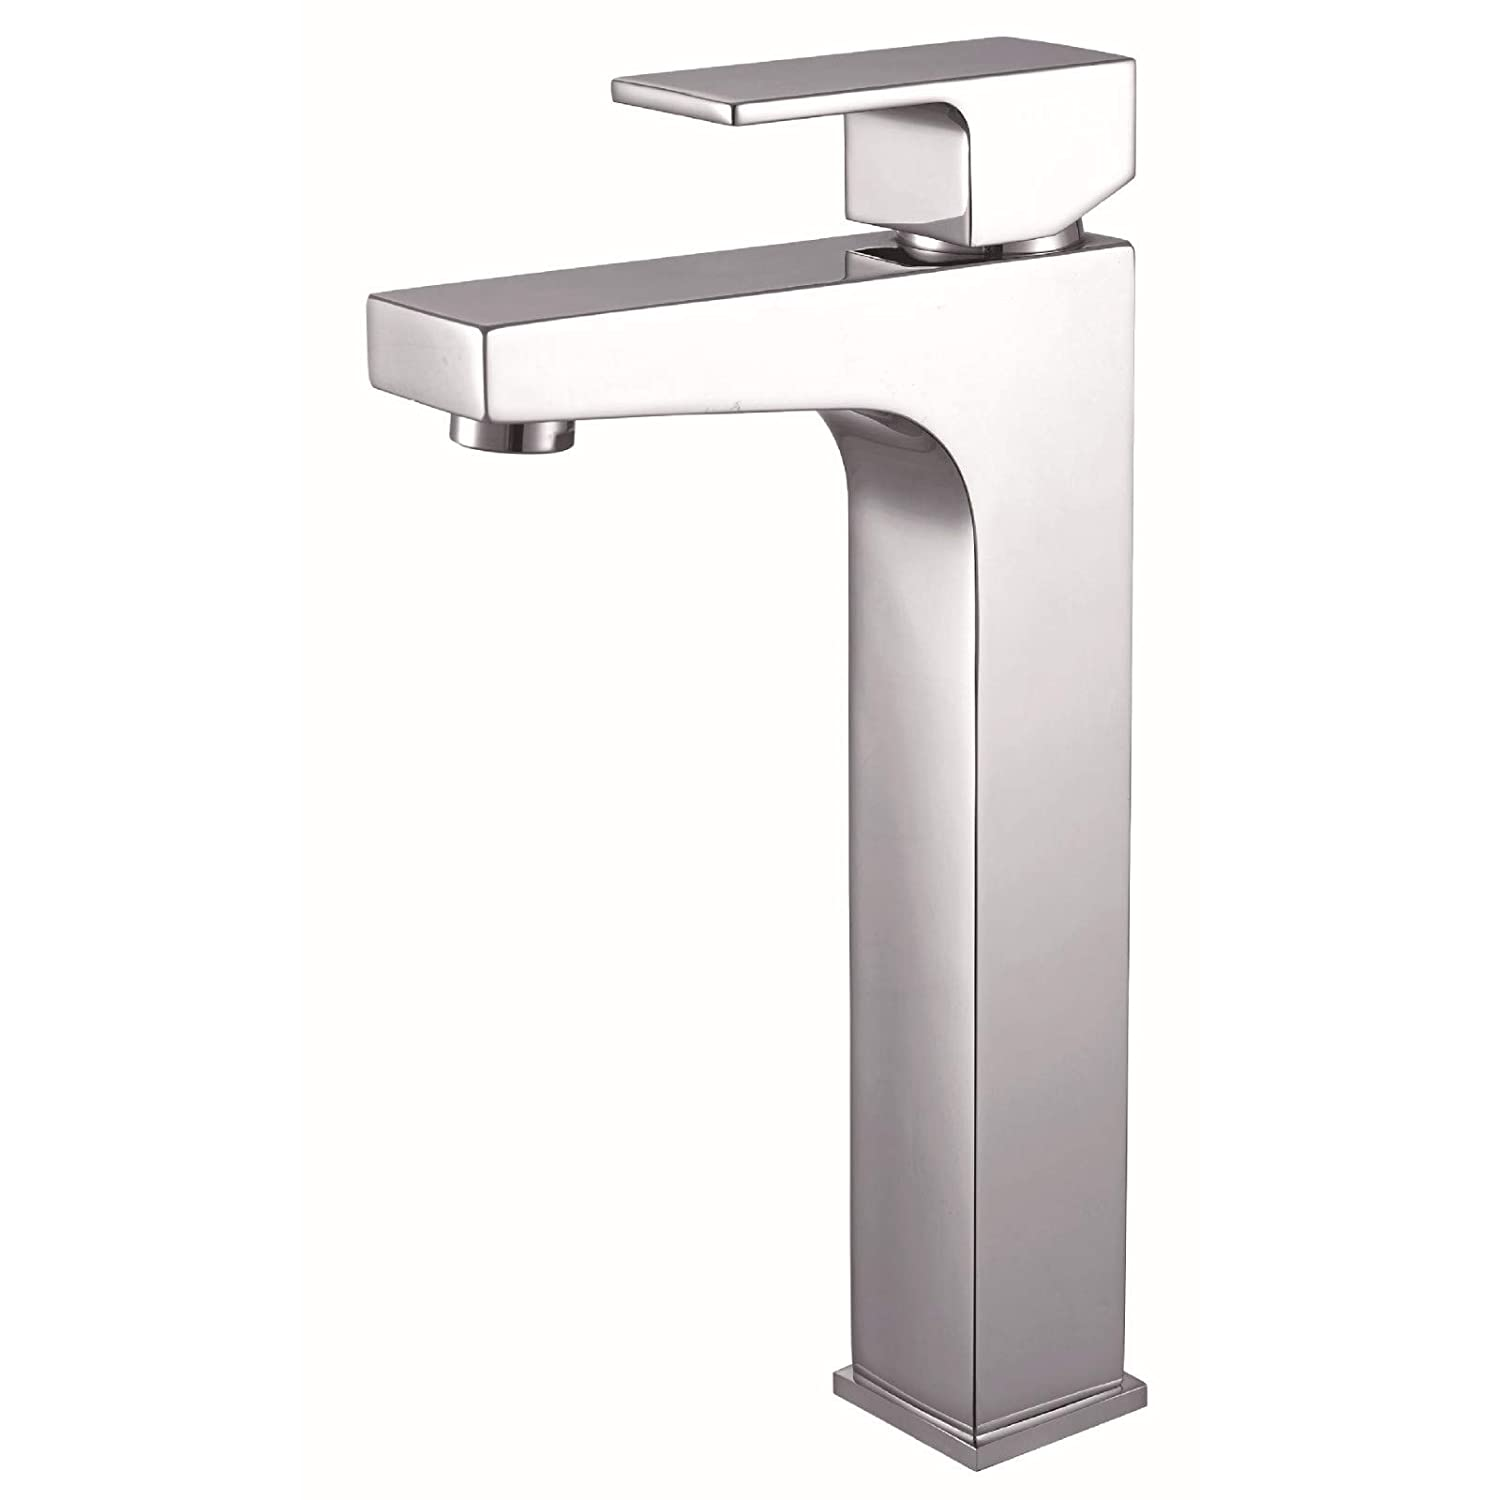 LHbox Basin Mixer Tap Bathroom Sink Faucet Chrome single handle single hole cold-hot water and high-basin mixer